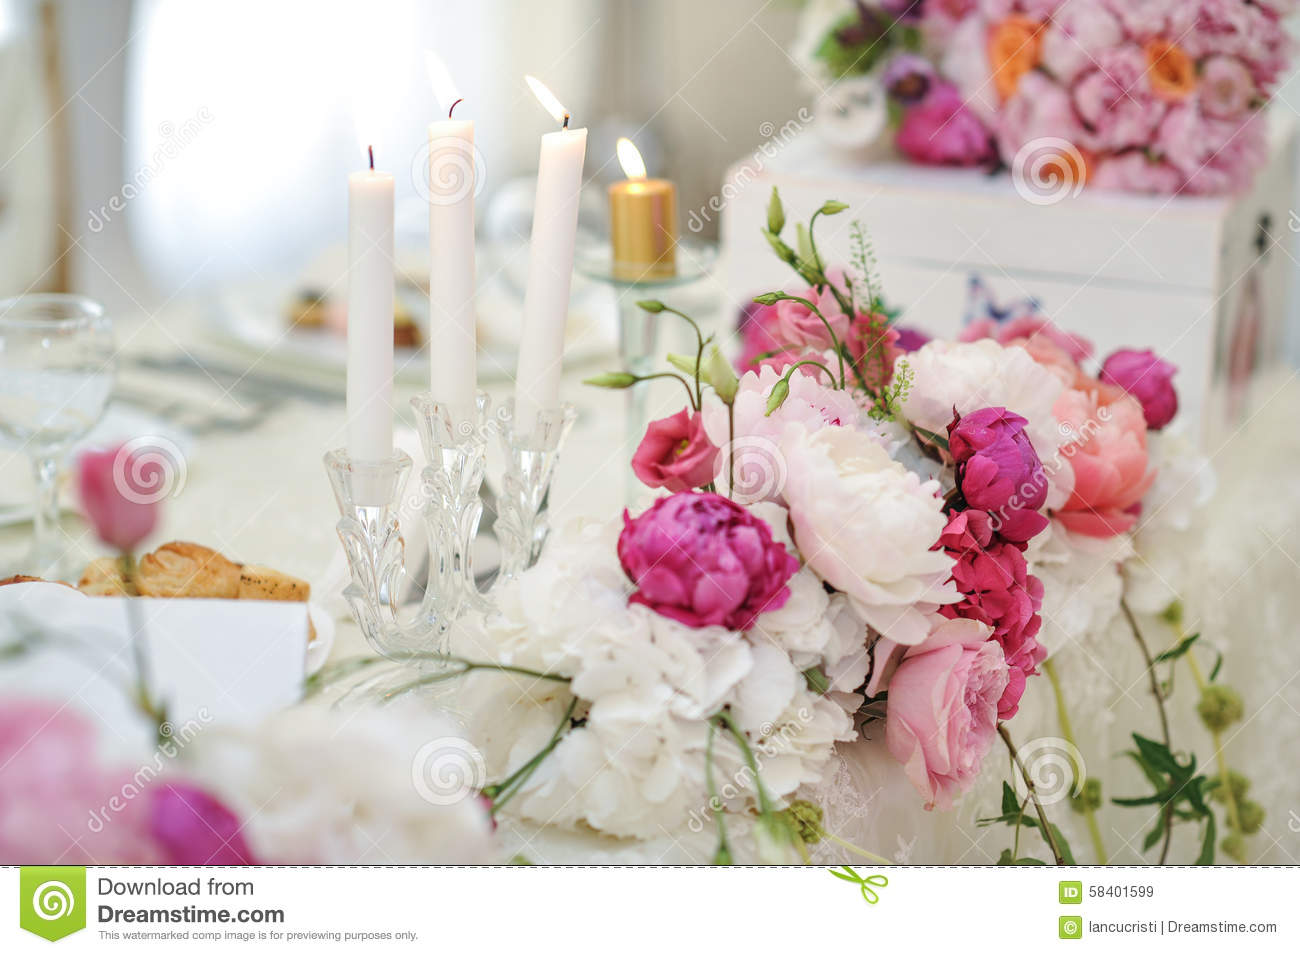 Wedding Decoration On Table Floral Arrangements And